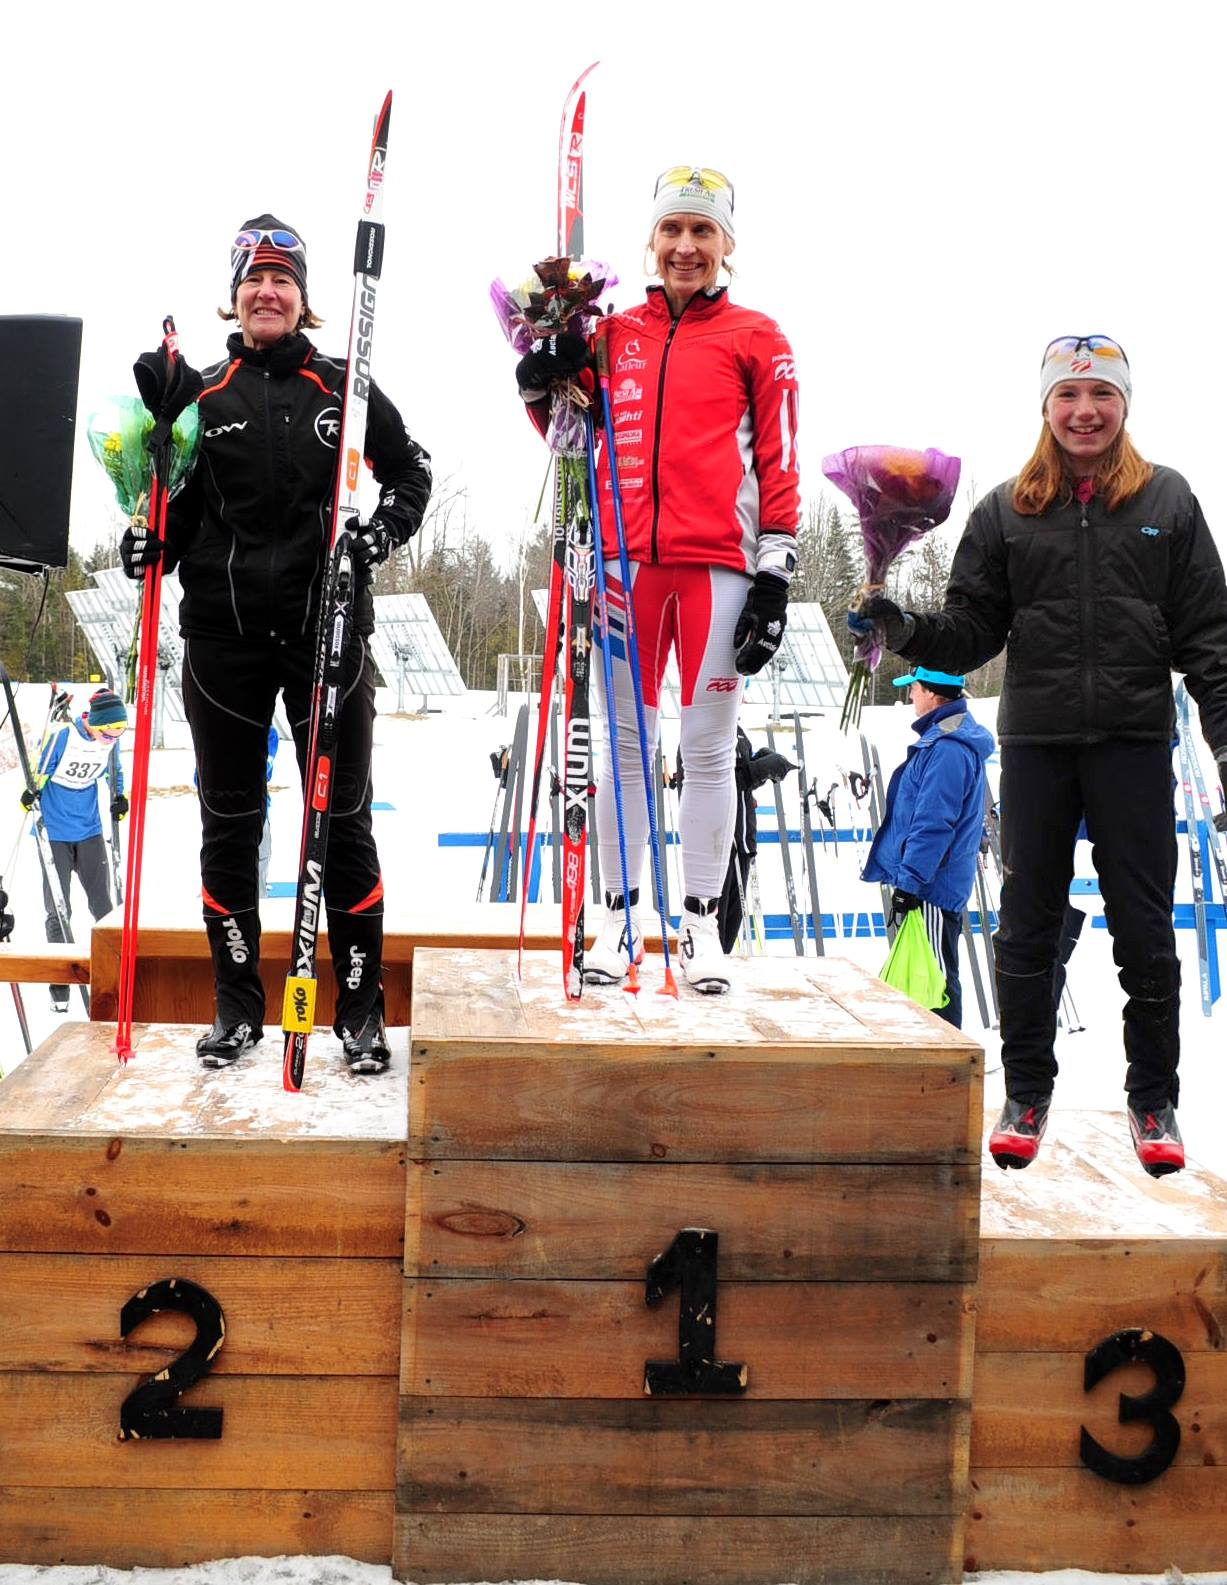 25 km Craftsbury Podium. Jim Fredericks photo.